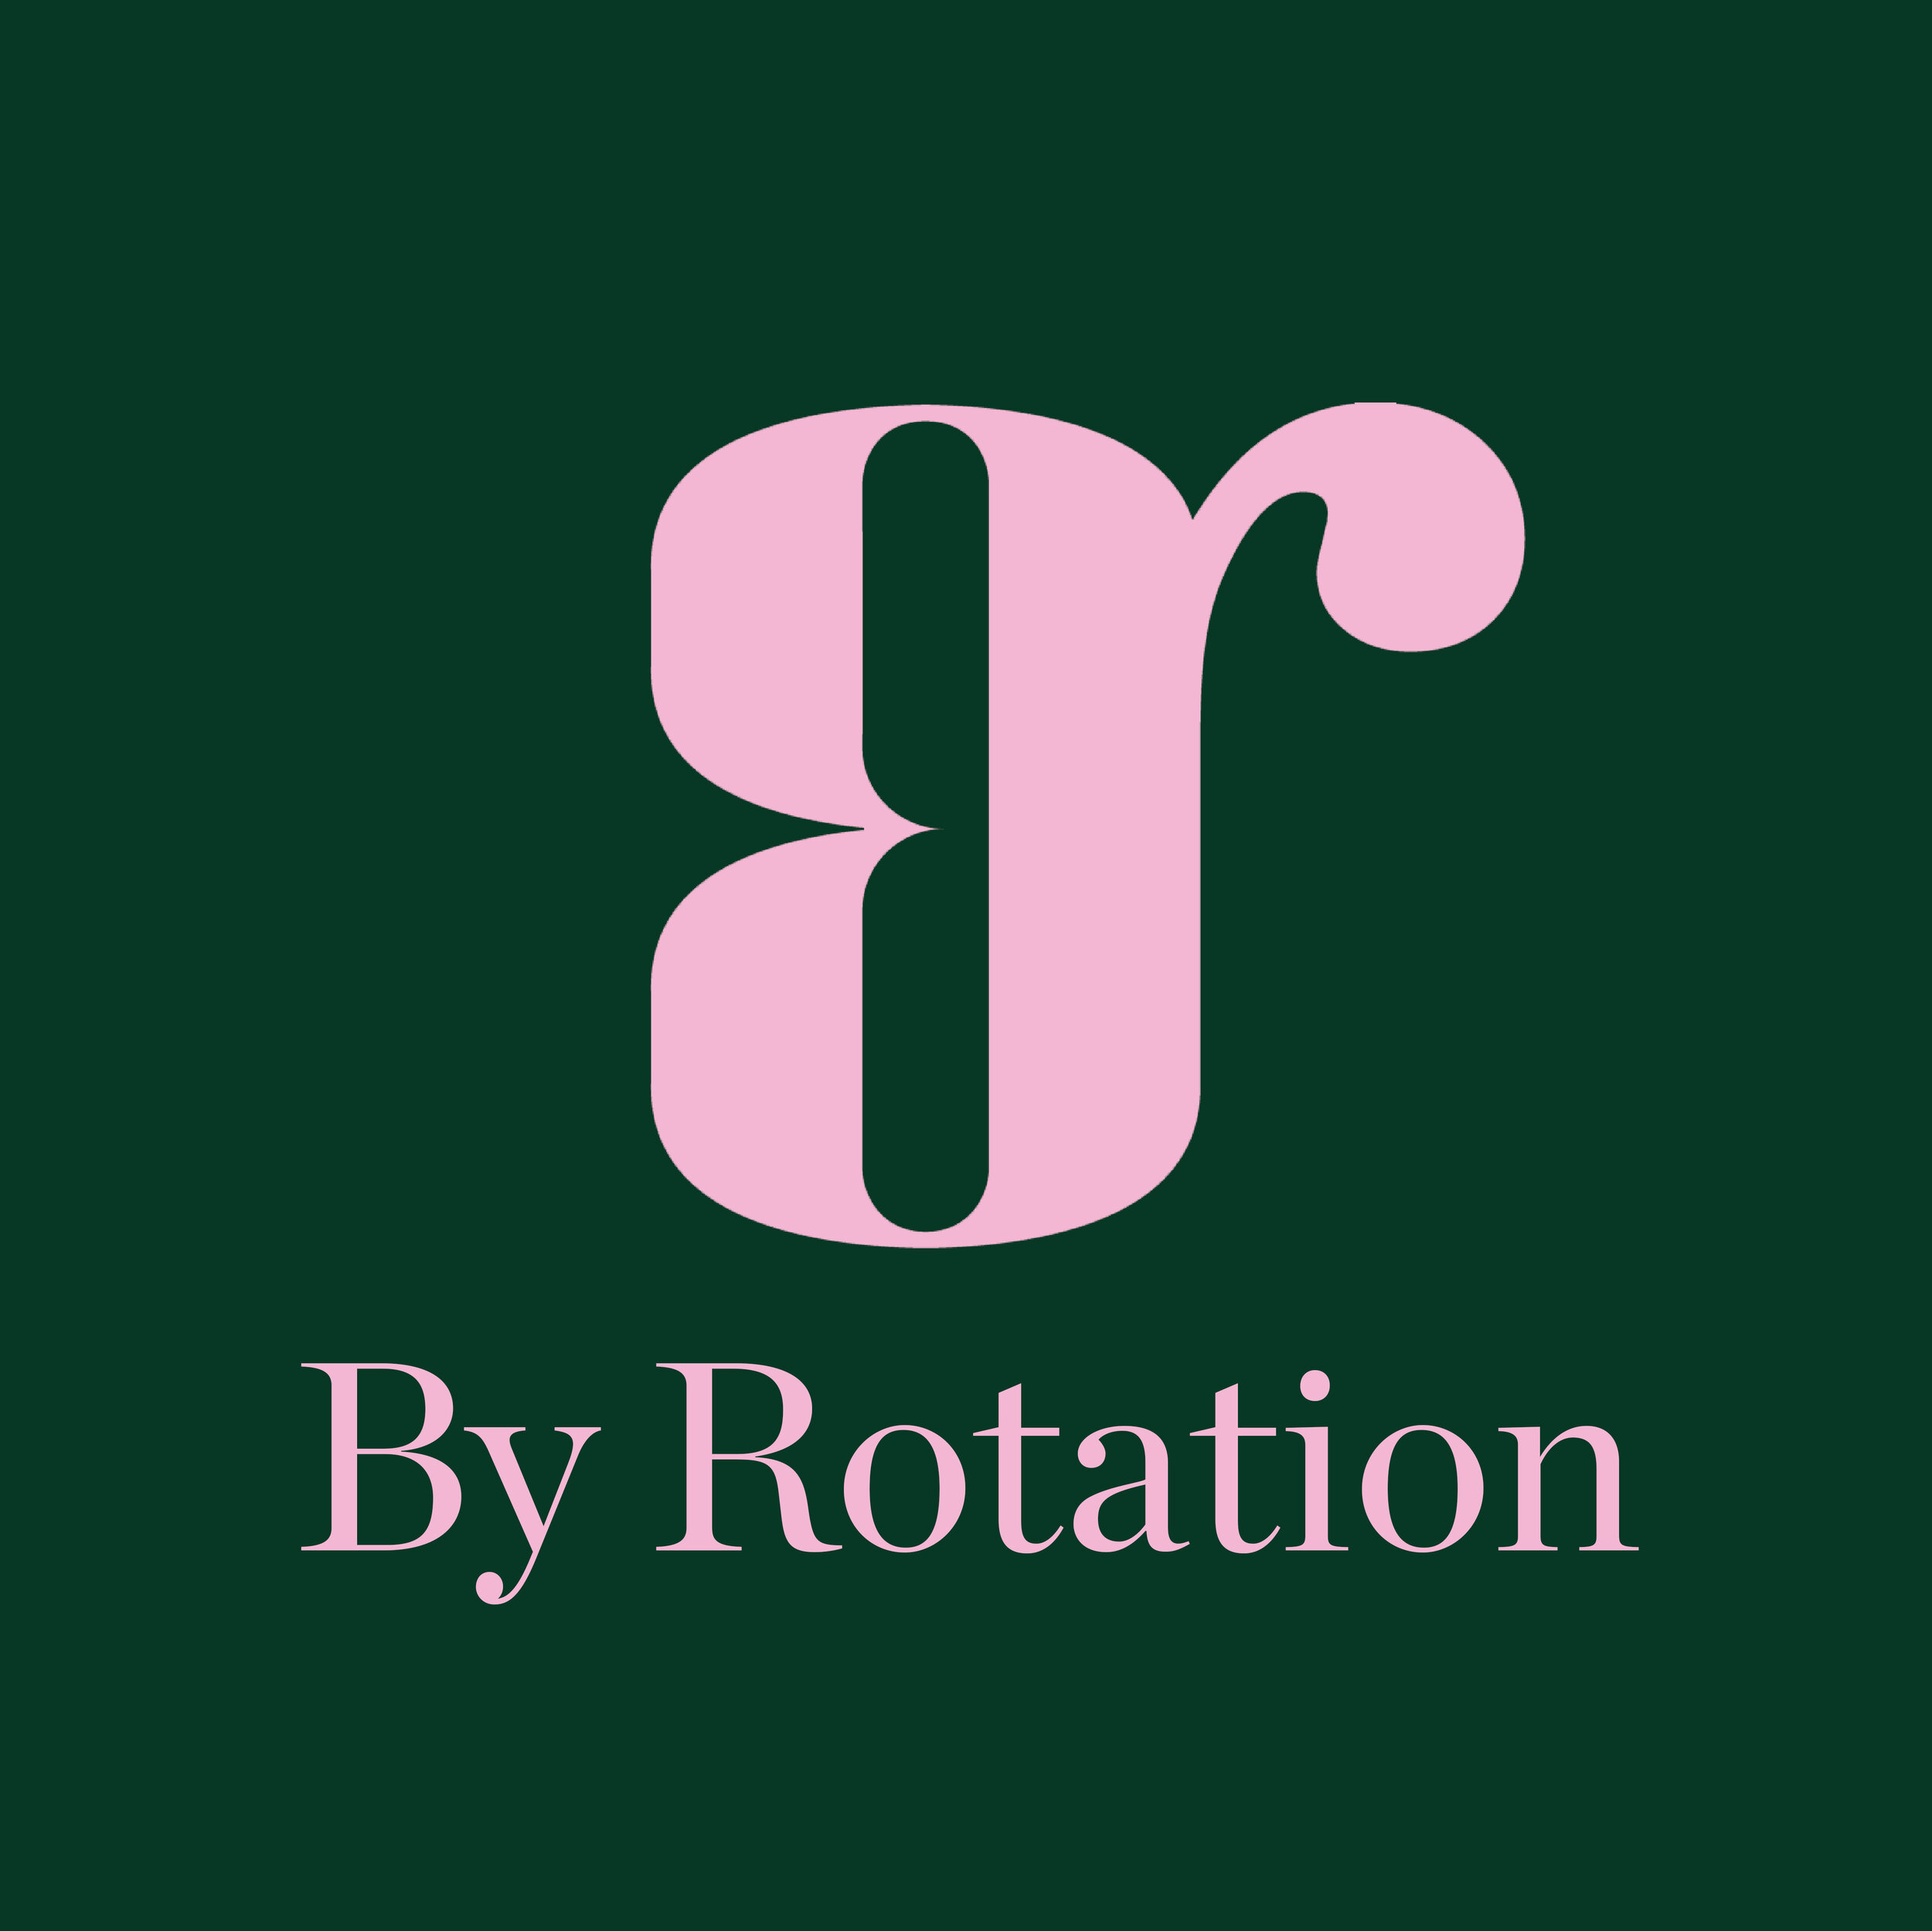 By Rotation